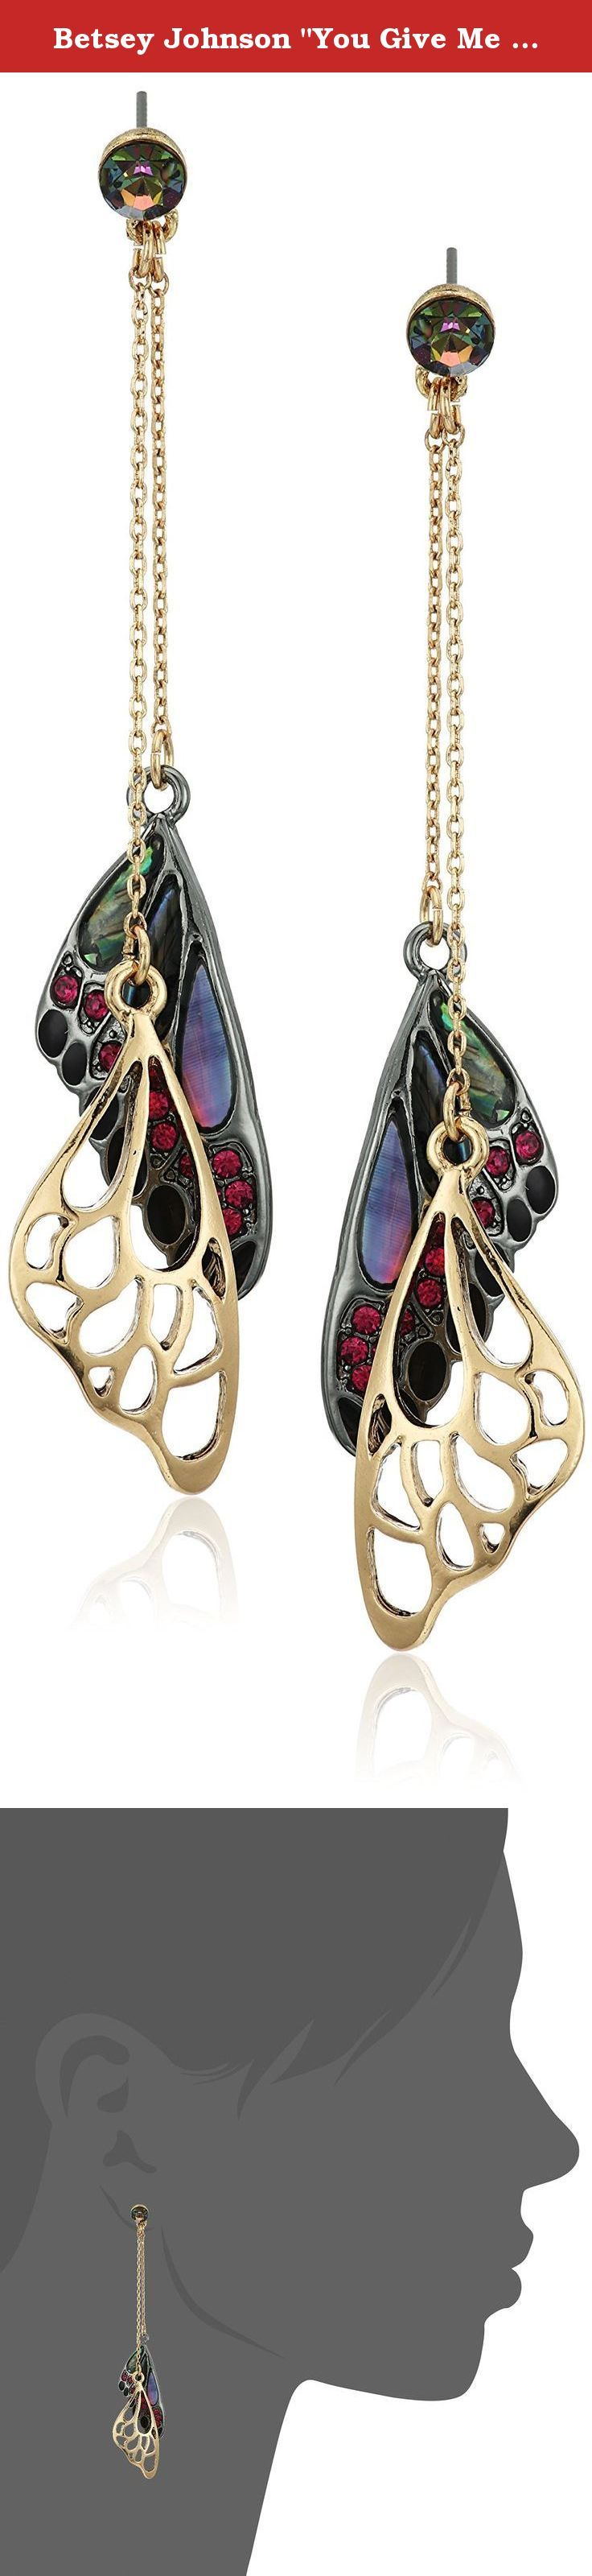 "Betsey Johnson ""You Give Me Butterflies"" Mixed Stone Butterfly Wing Linear Drop Earring. Items that are handmade may vary in size, shape and color. Made in China. gold tone linear chains with mixed stone butterfly wing and gold tone cut-out butterfly wing drops. Imported."